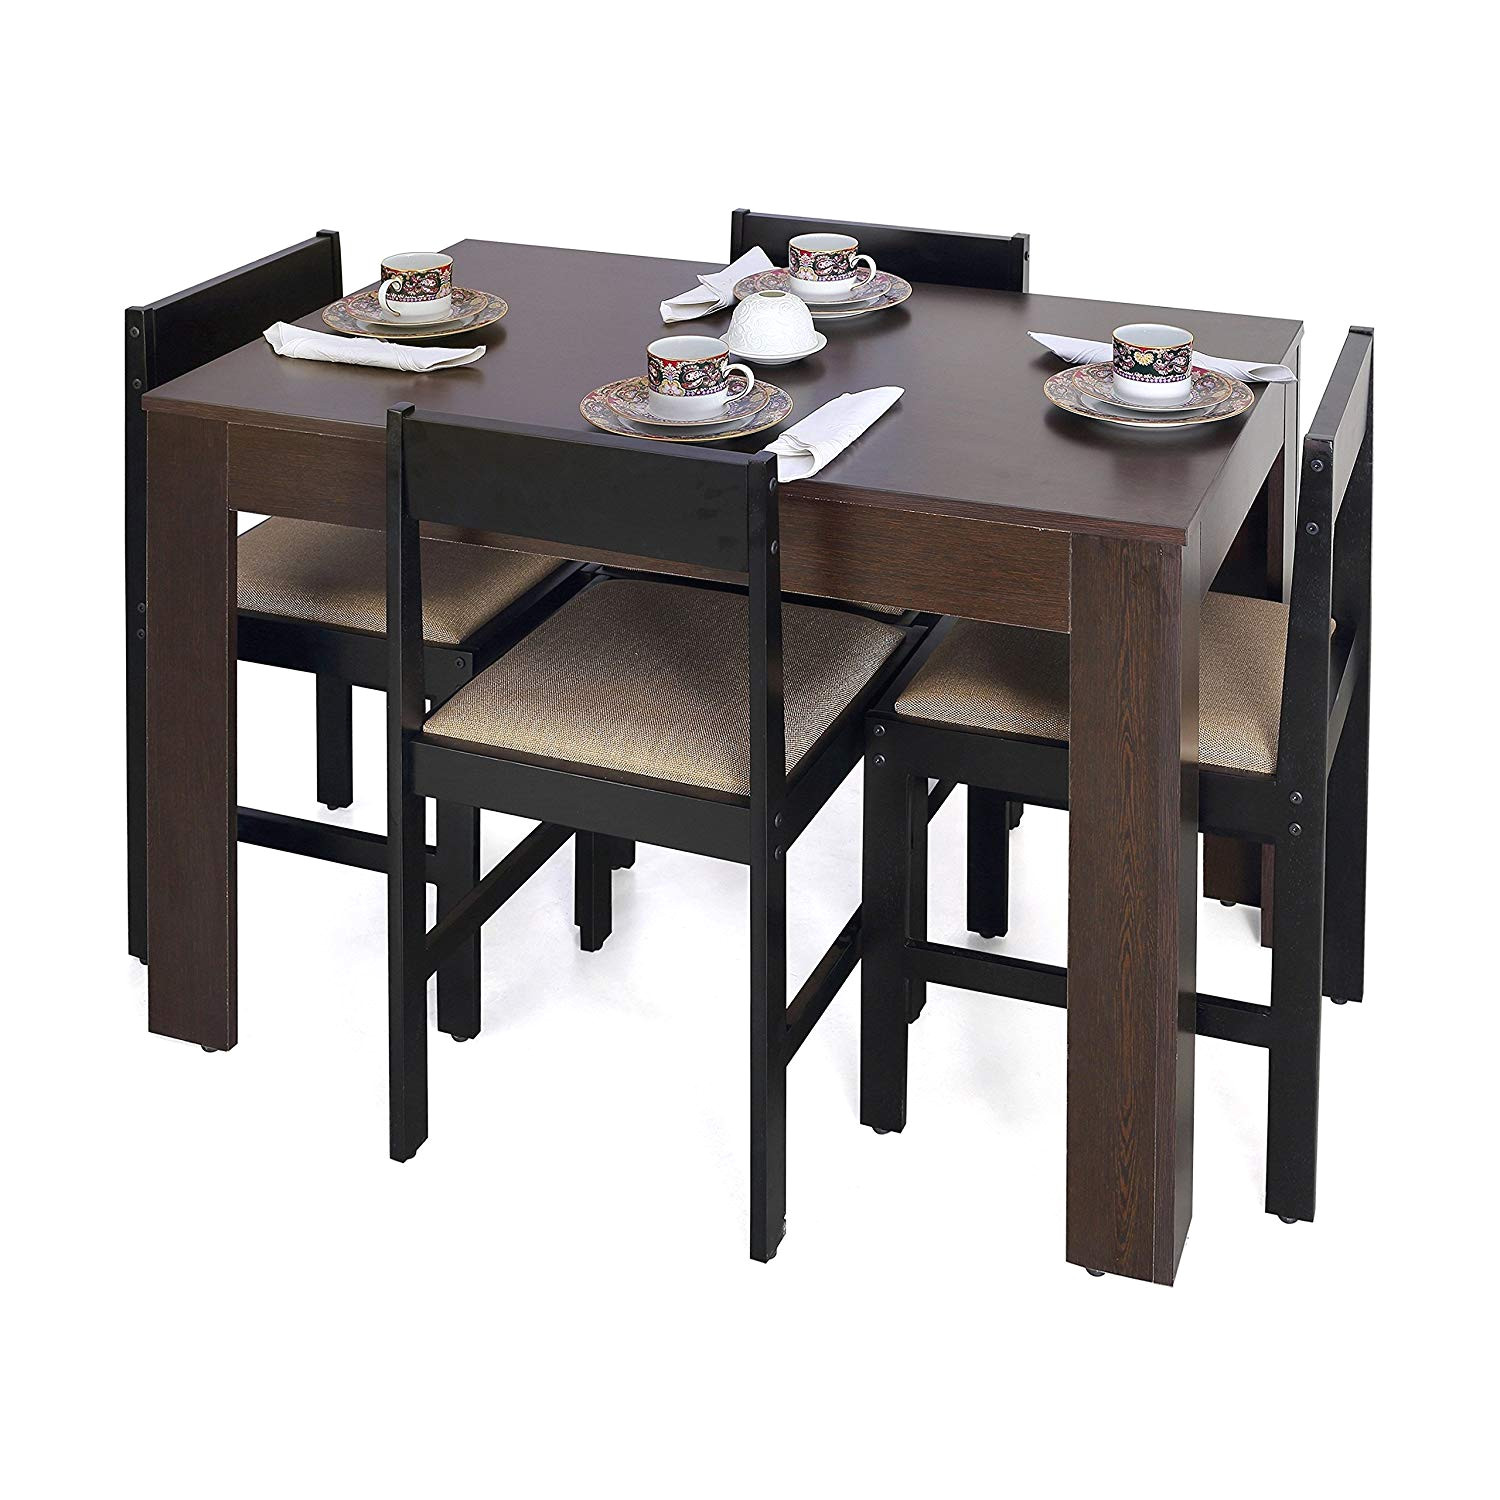 forzza peter four seater rectangular dining table set wenge amazon in home kitchen